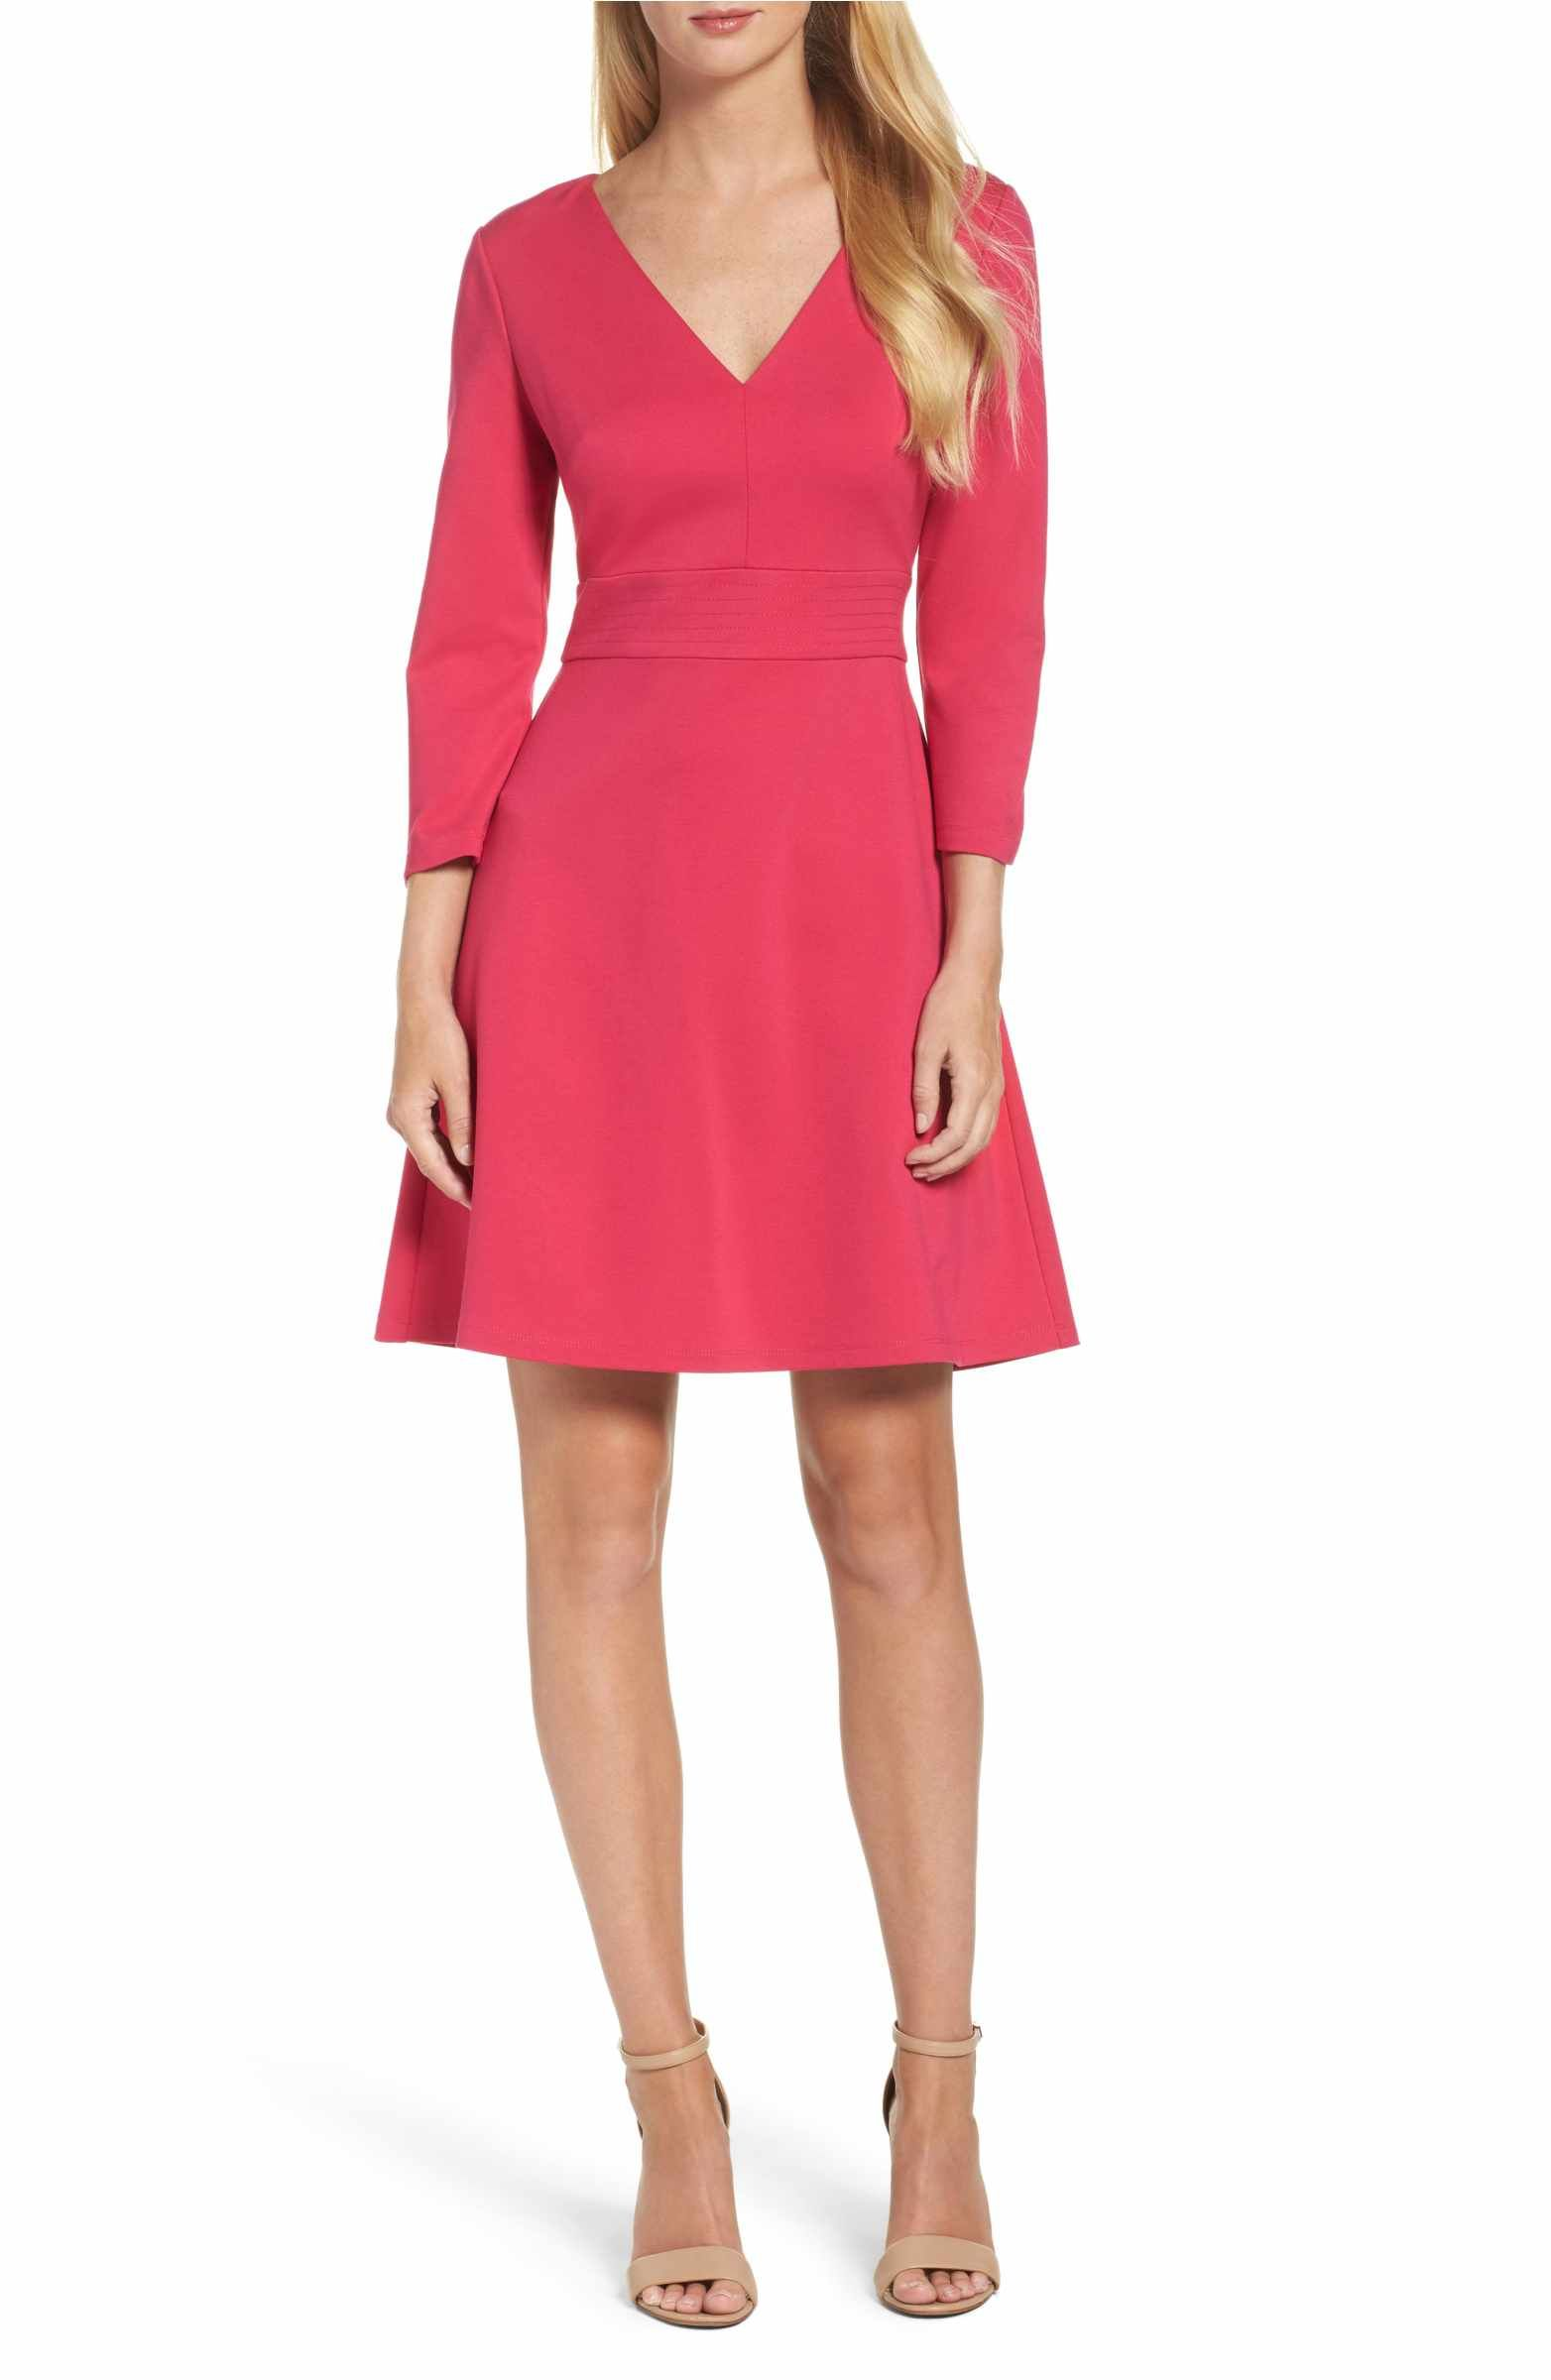 Main image eliza j fit u flare dress work pinterest fit